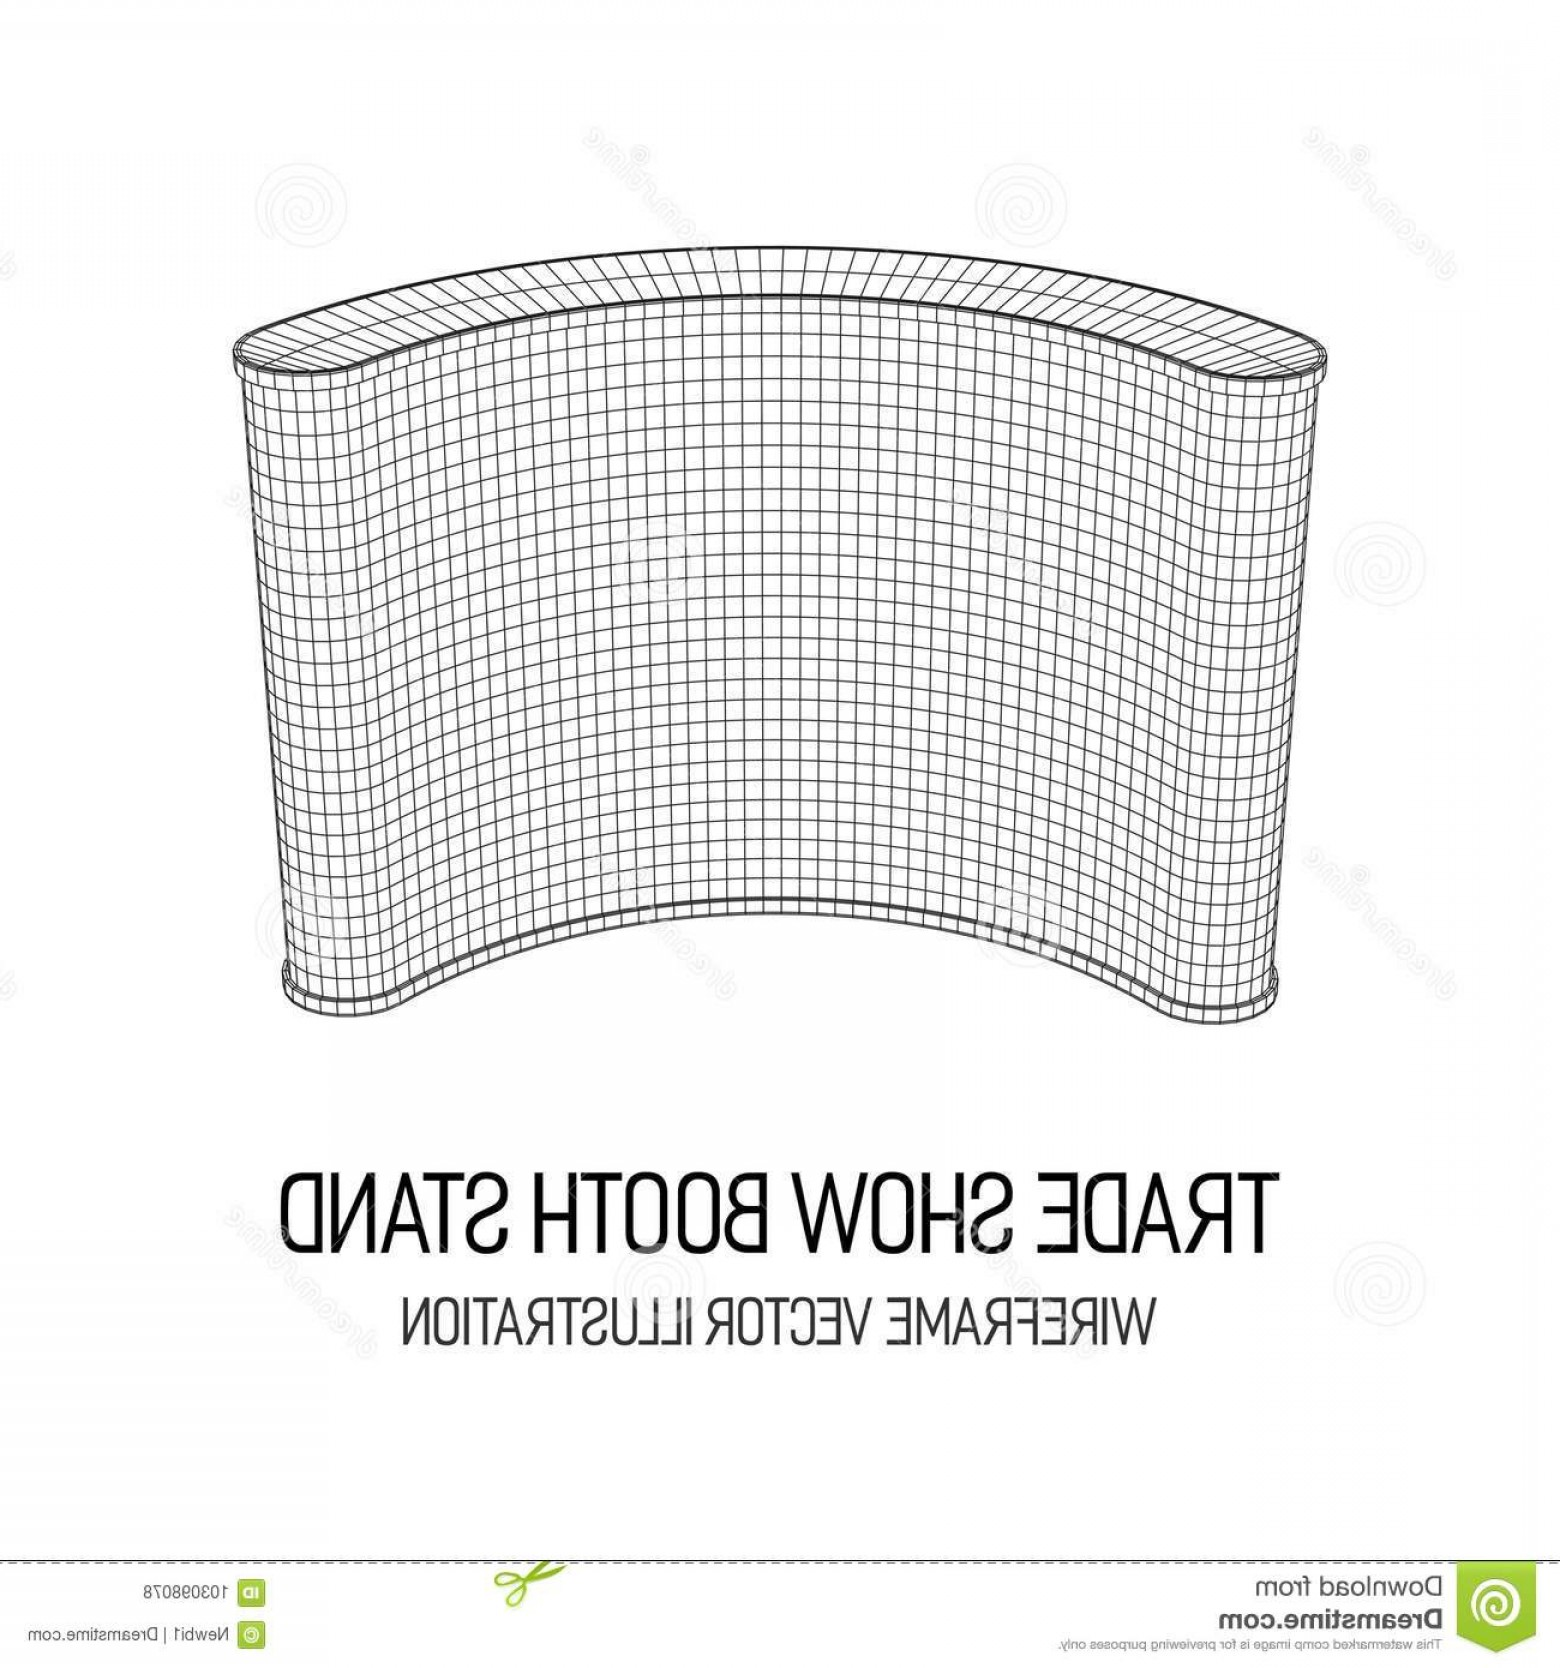 Commercial Booth Vector: Trade Show Booth Wireframe Mesh Vector Template Your Design Trade Show Booth Image